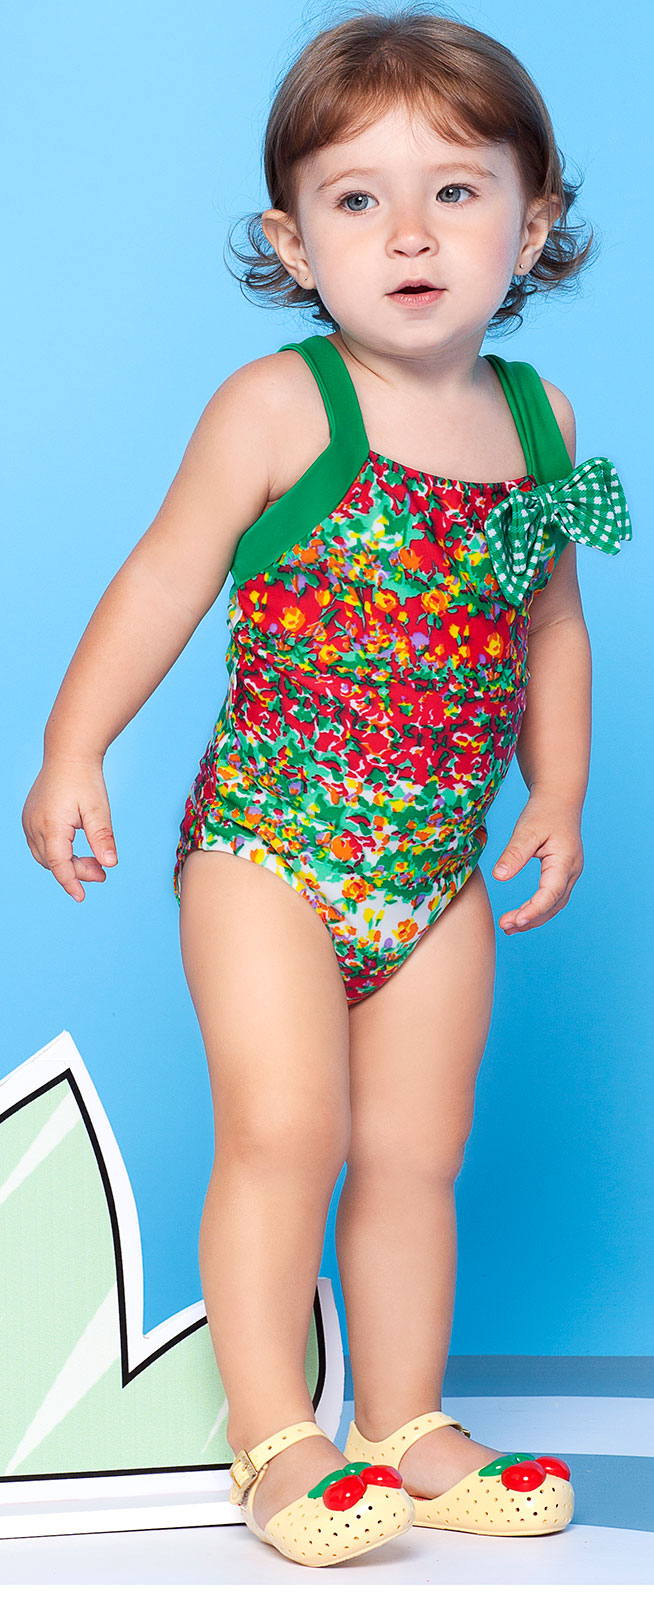 Colourful Flowery One Piece Little Girl S Swimsuit